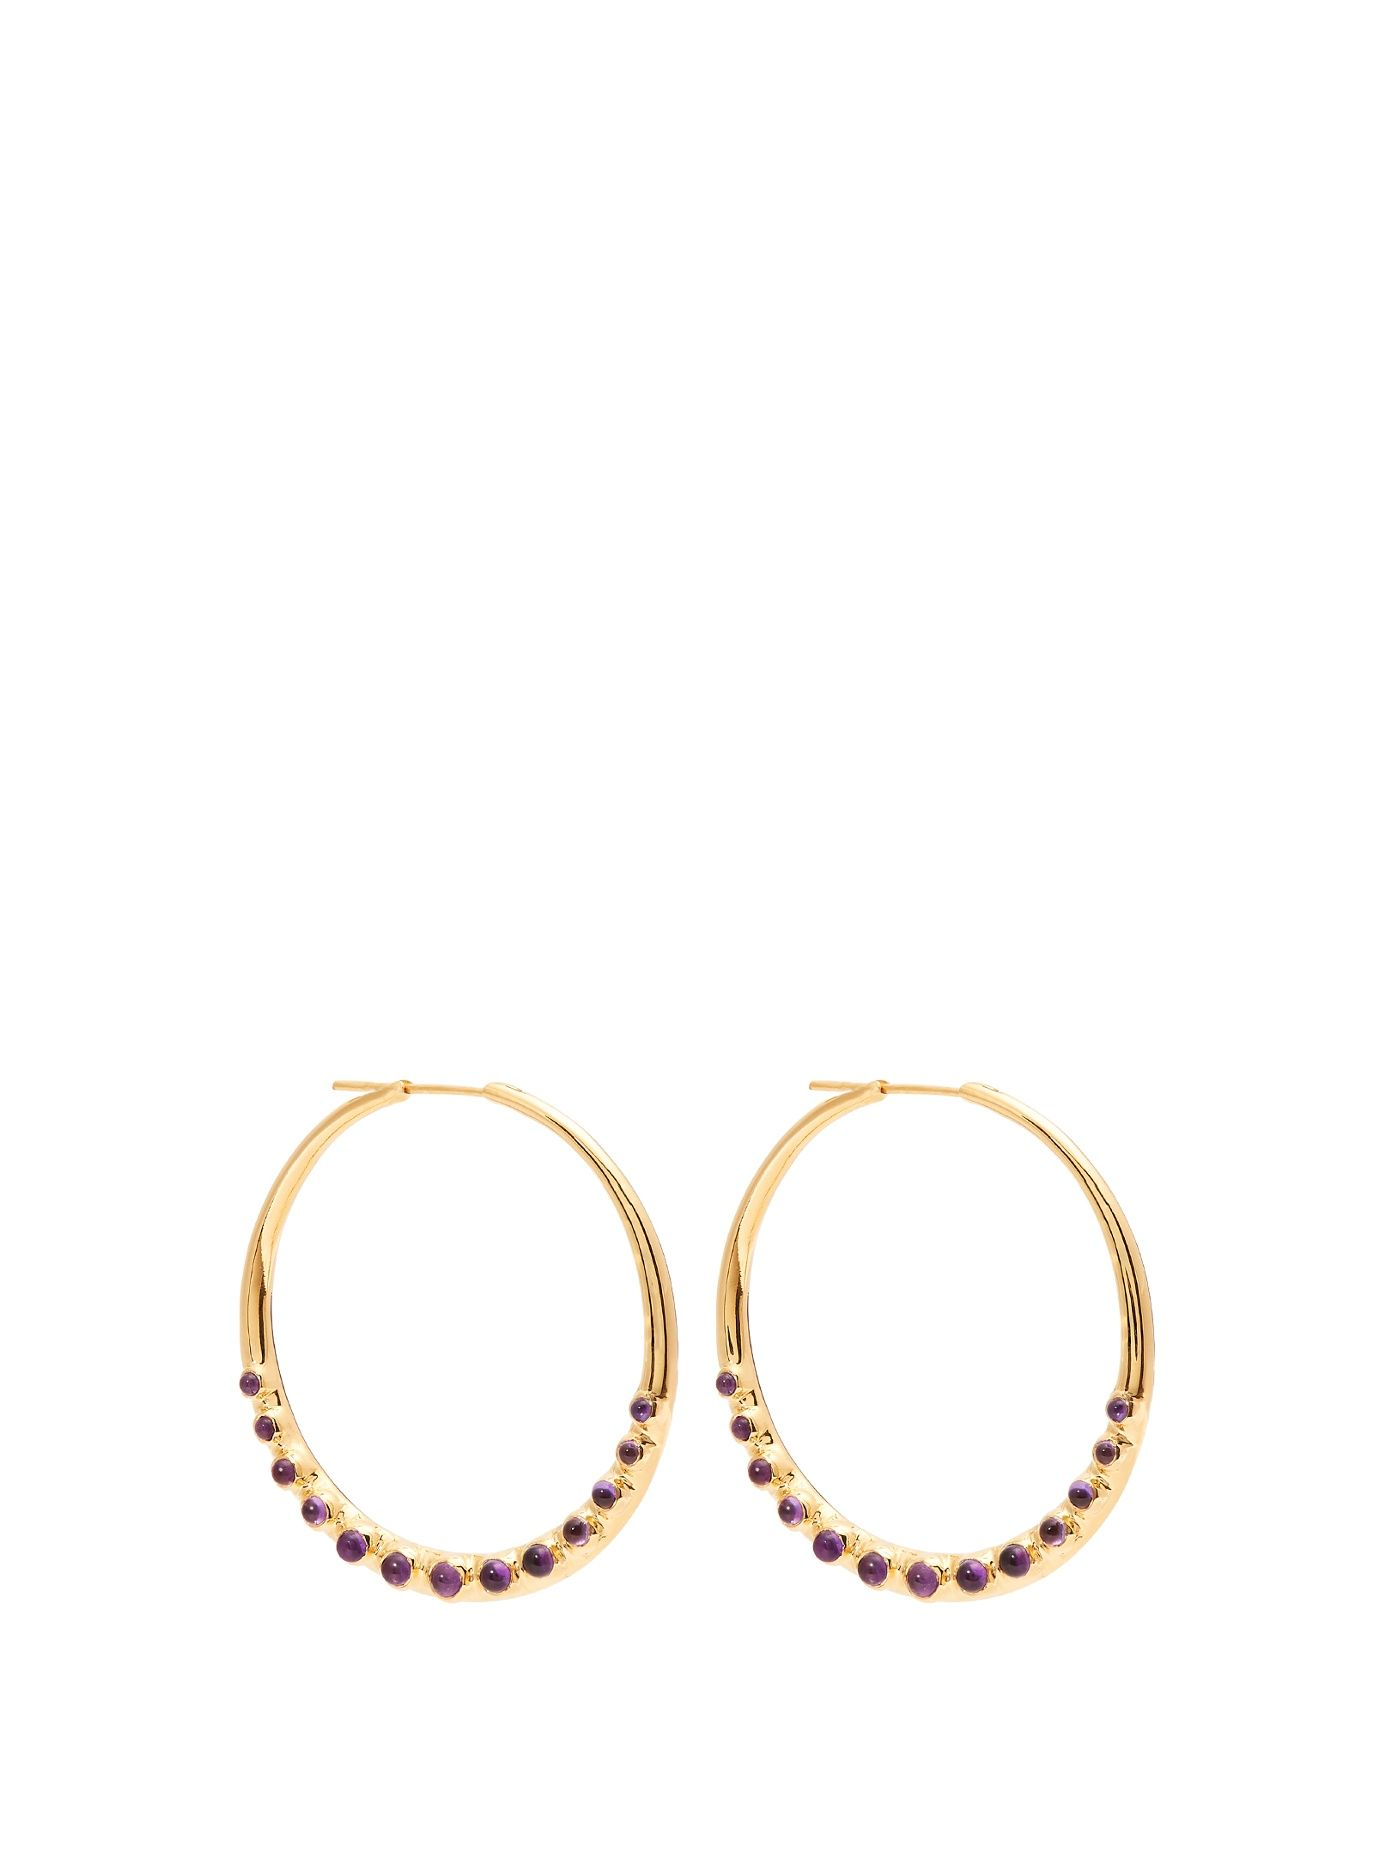 Cabochon Pearl Embellished Gold-Plated Sterling Silver Hoop Earrings Theodora Warre RTaEpj